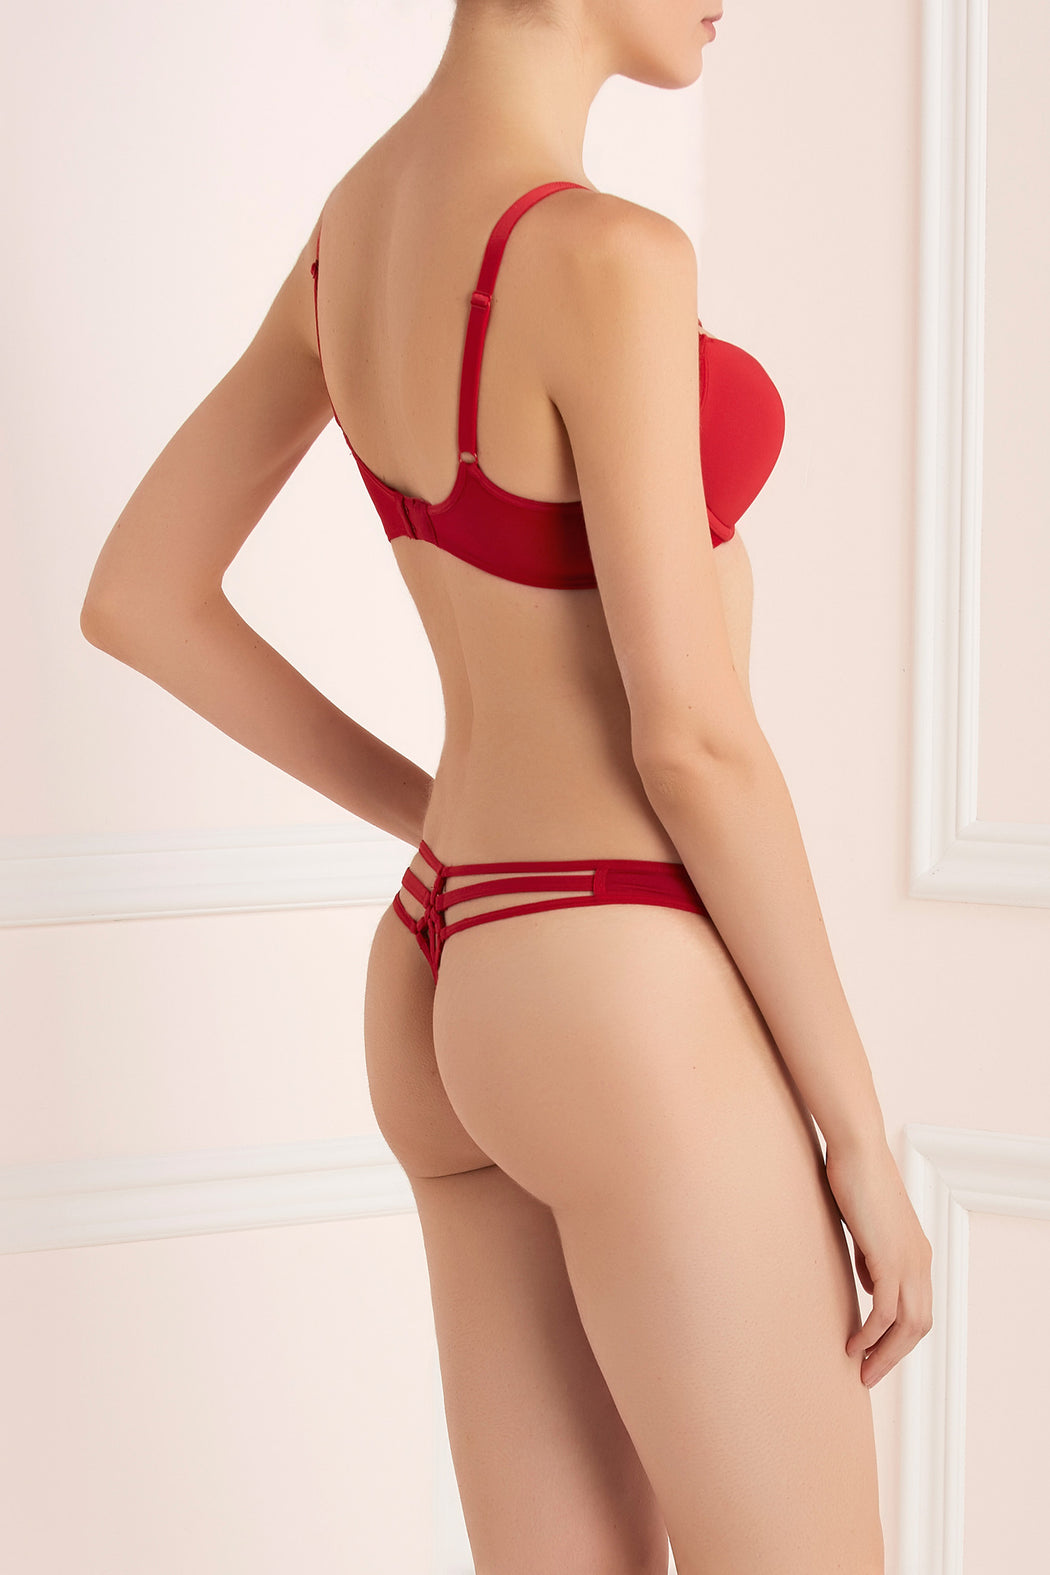 Space odyssey red thong by Marlies Dekkers workingirls lingerie